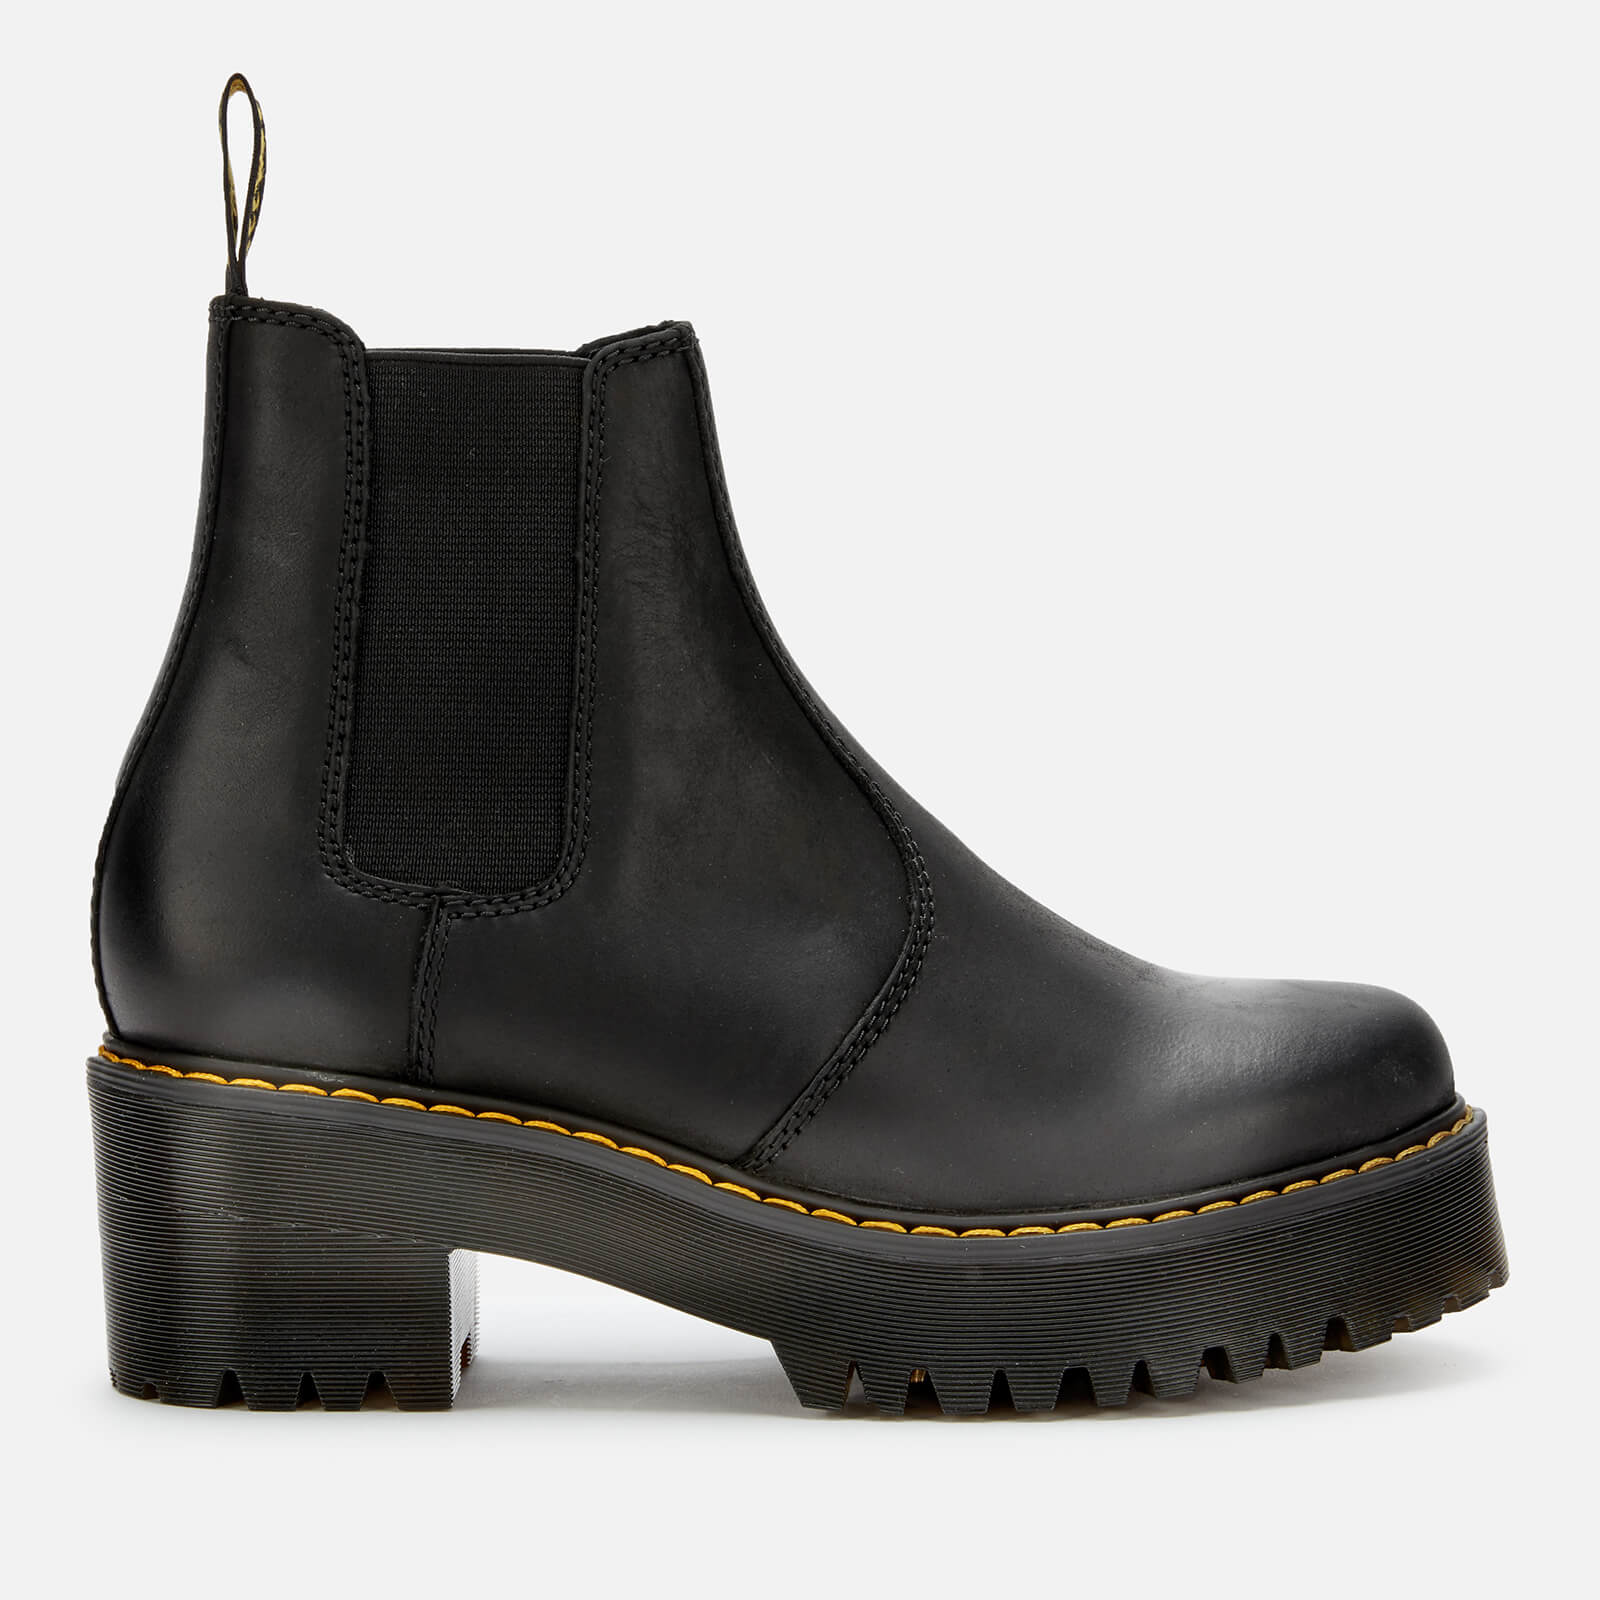 dr martens thick sole boots